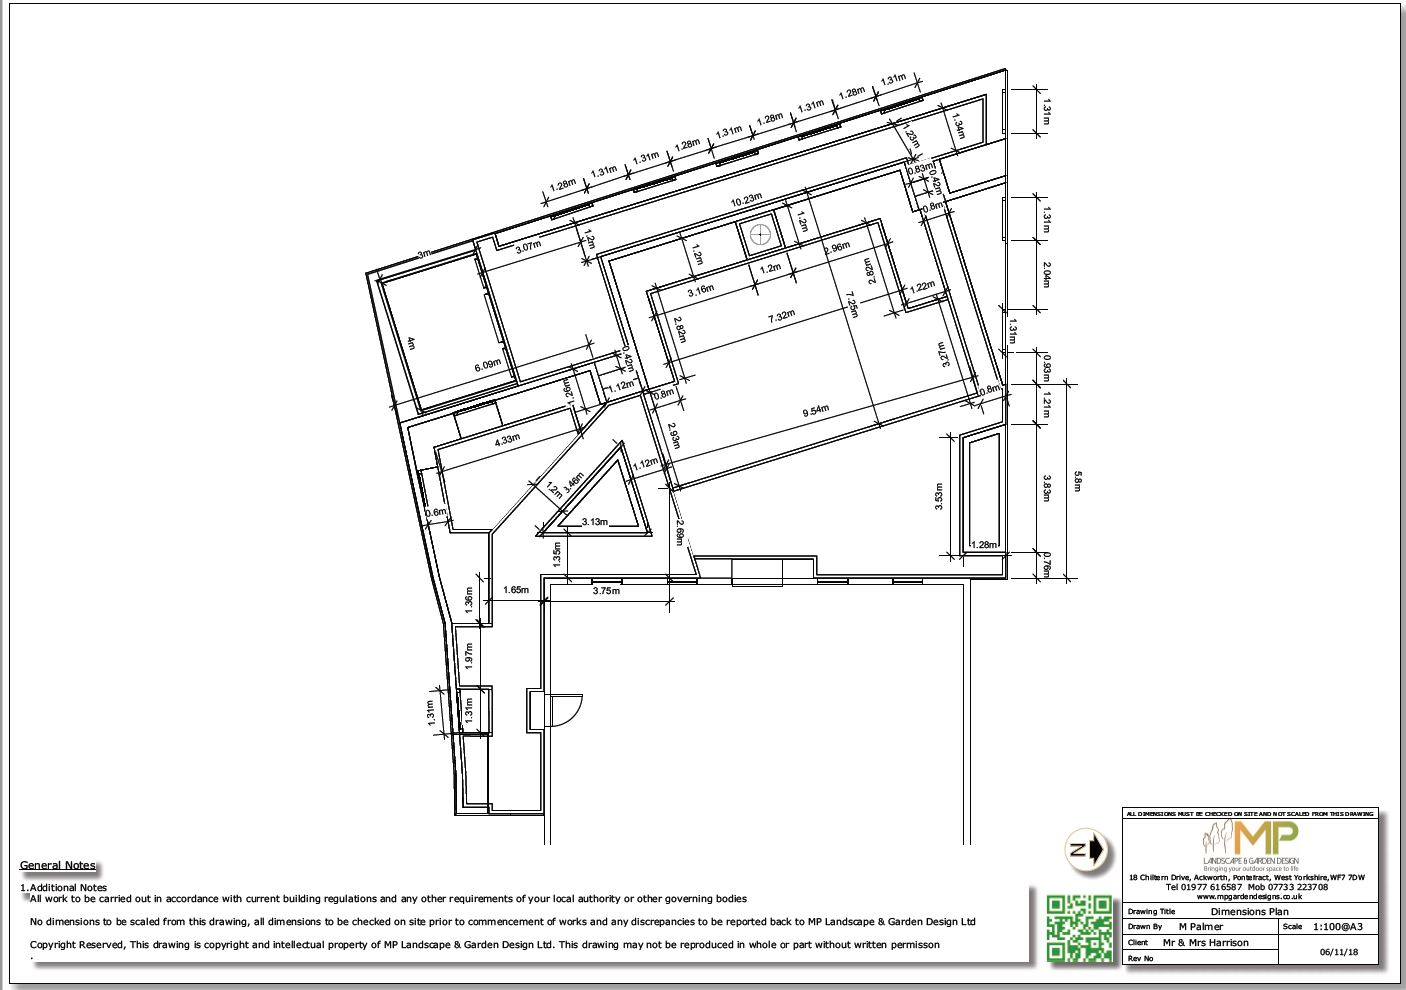 Dimensions plan for a rear garden in Wistow, North Yorshire.